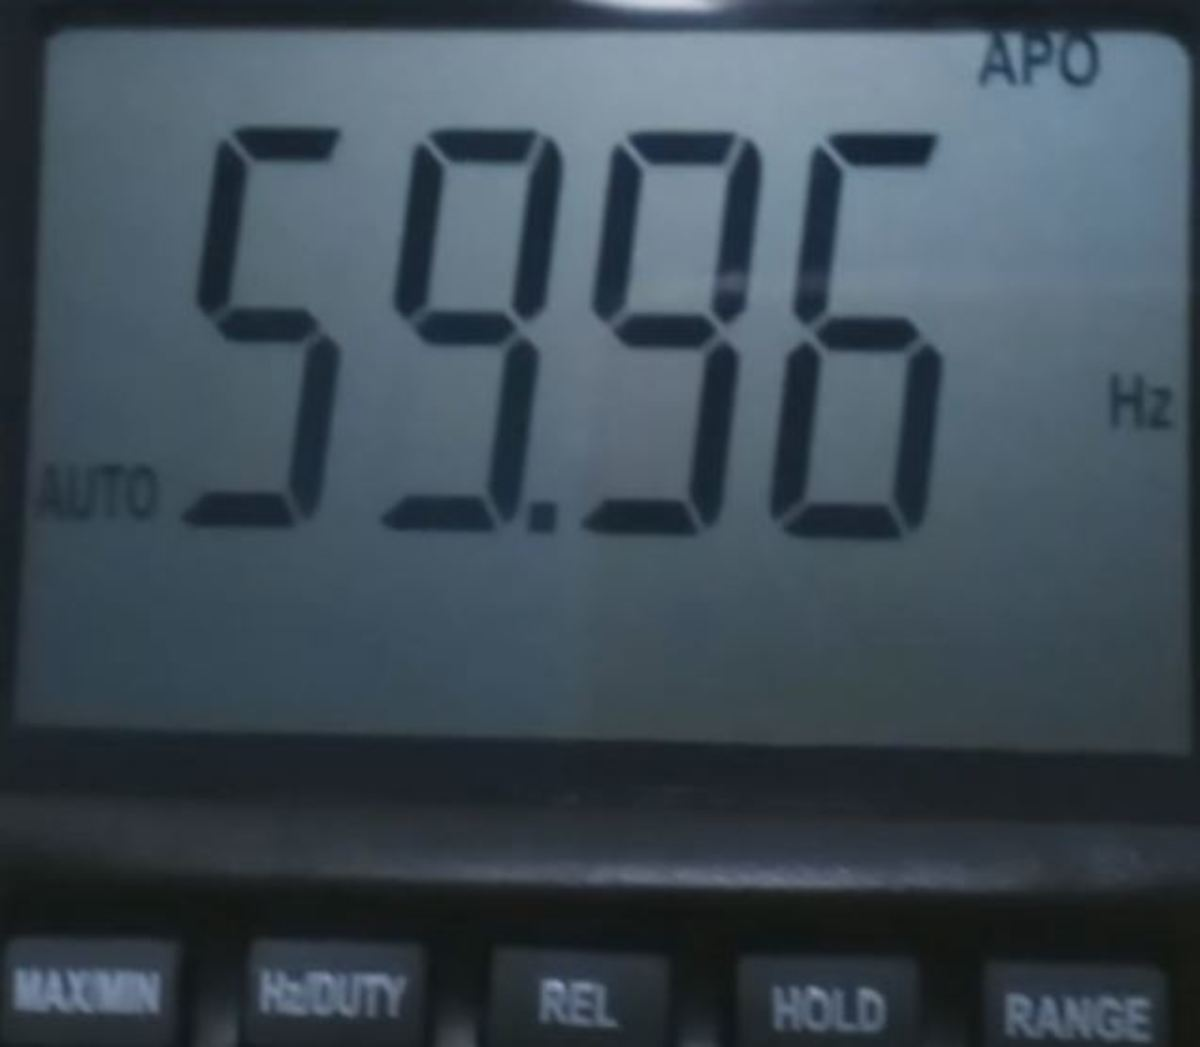 Meter displaying the AC frequency (cycles per second).